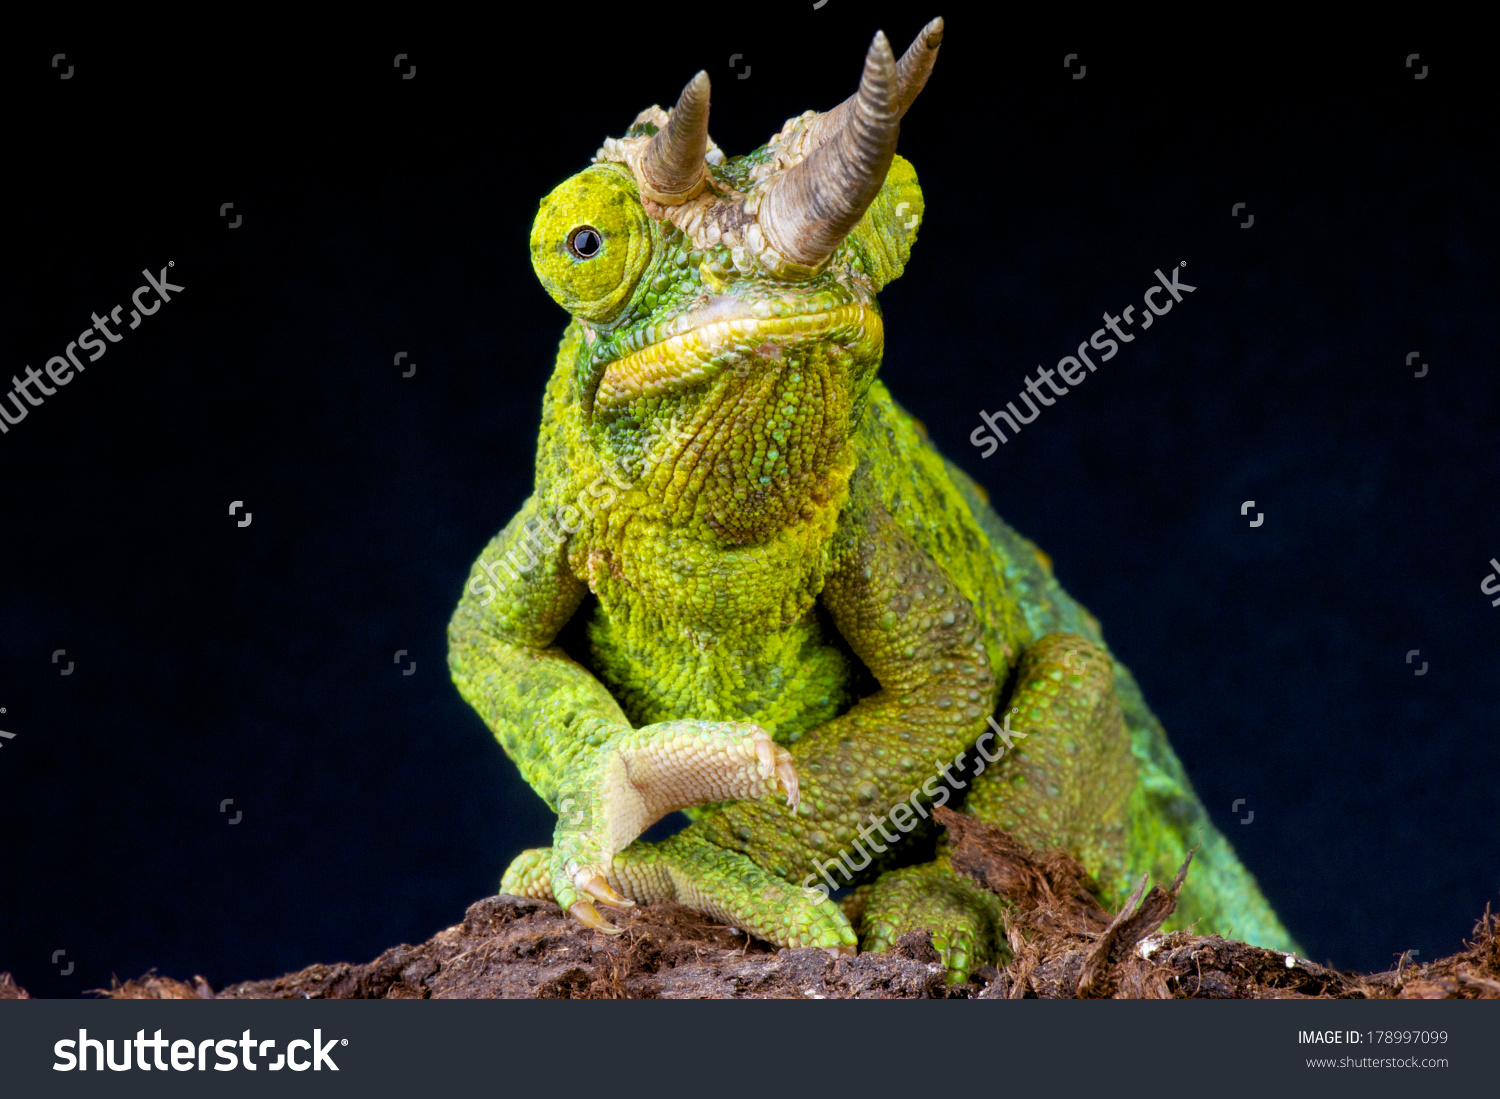 Three Horned Chameleon Trioceros Jacksonii Stock Photo 178997099.